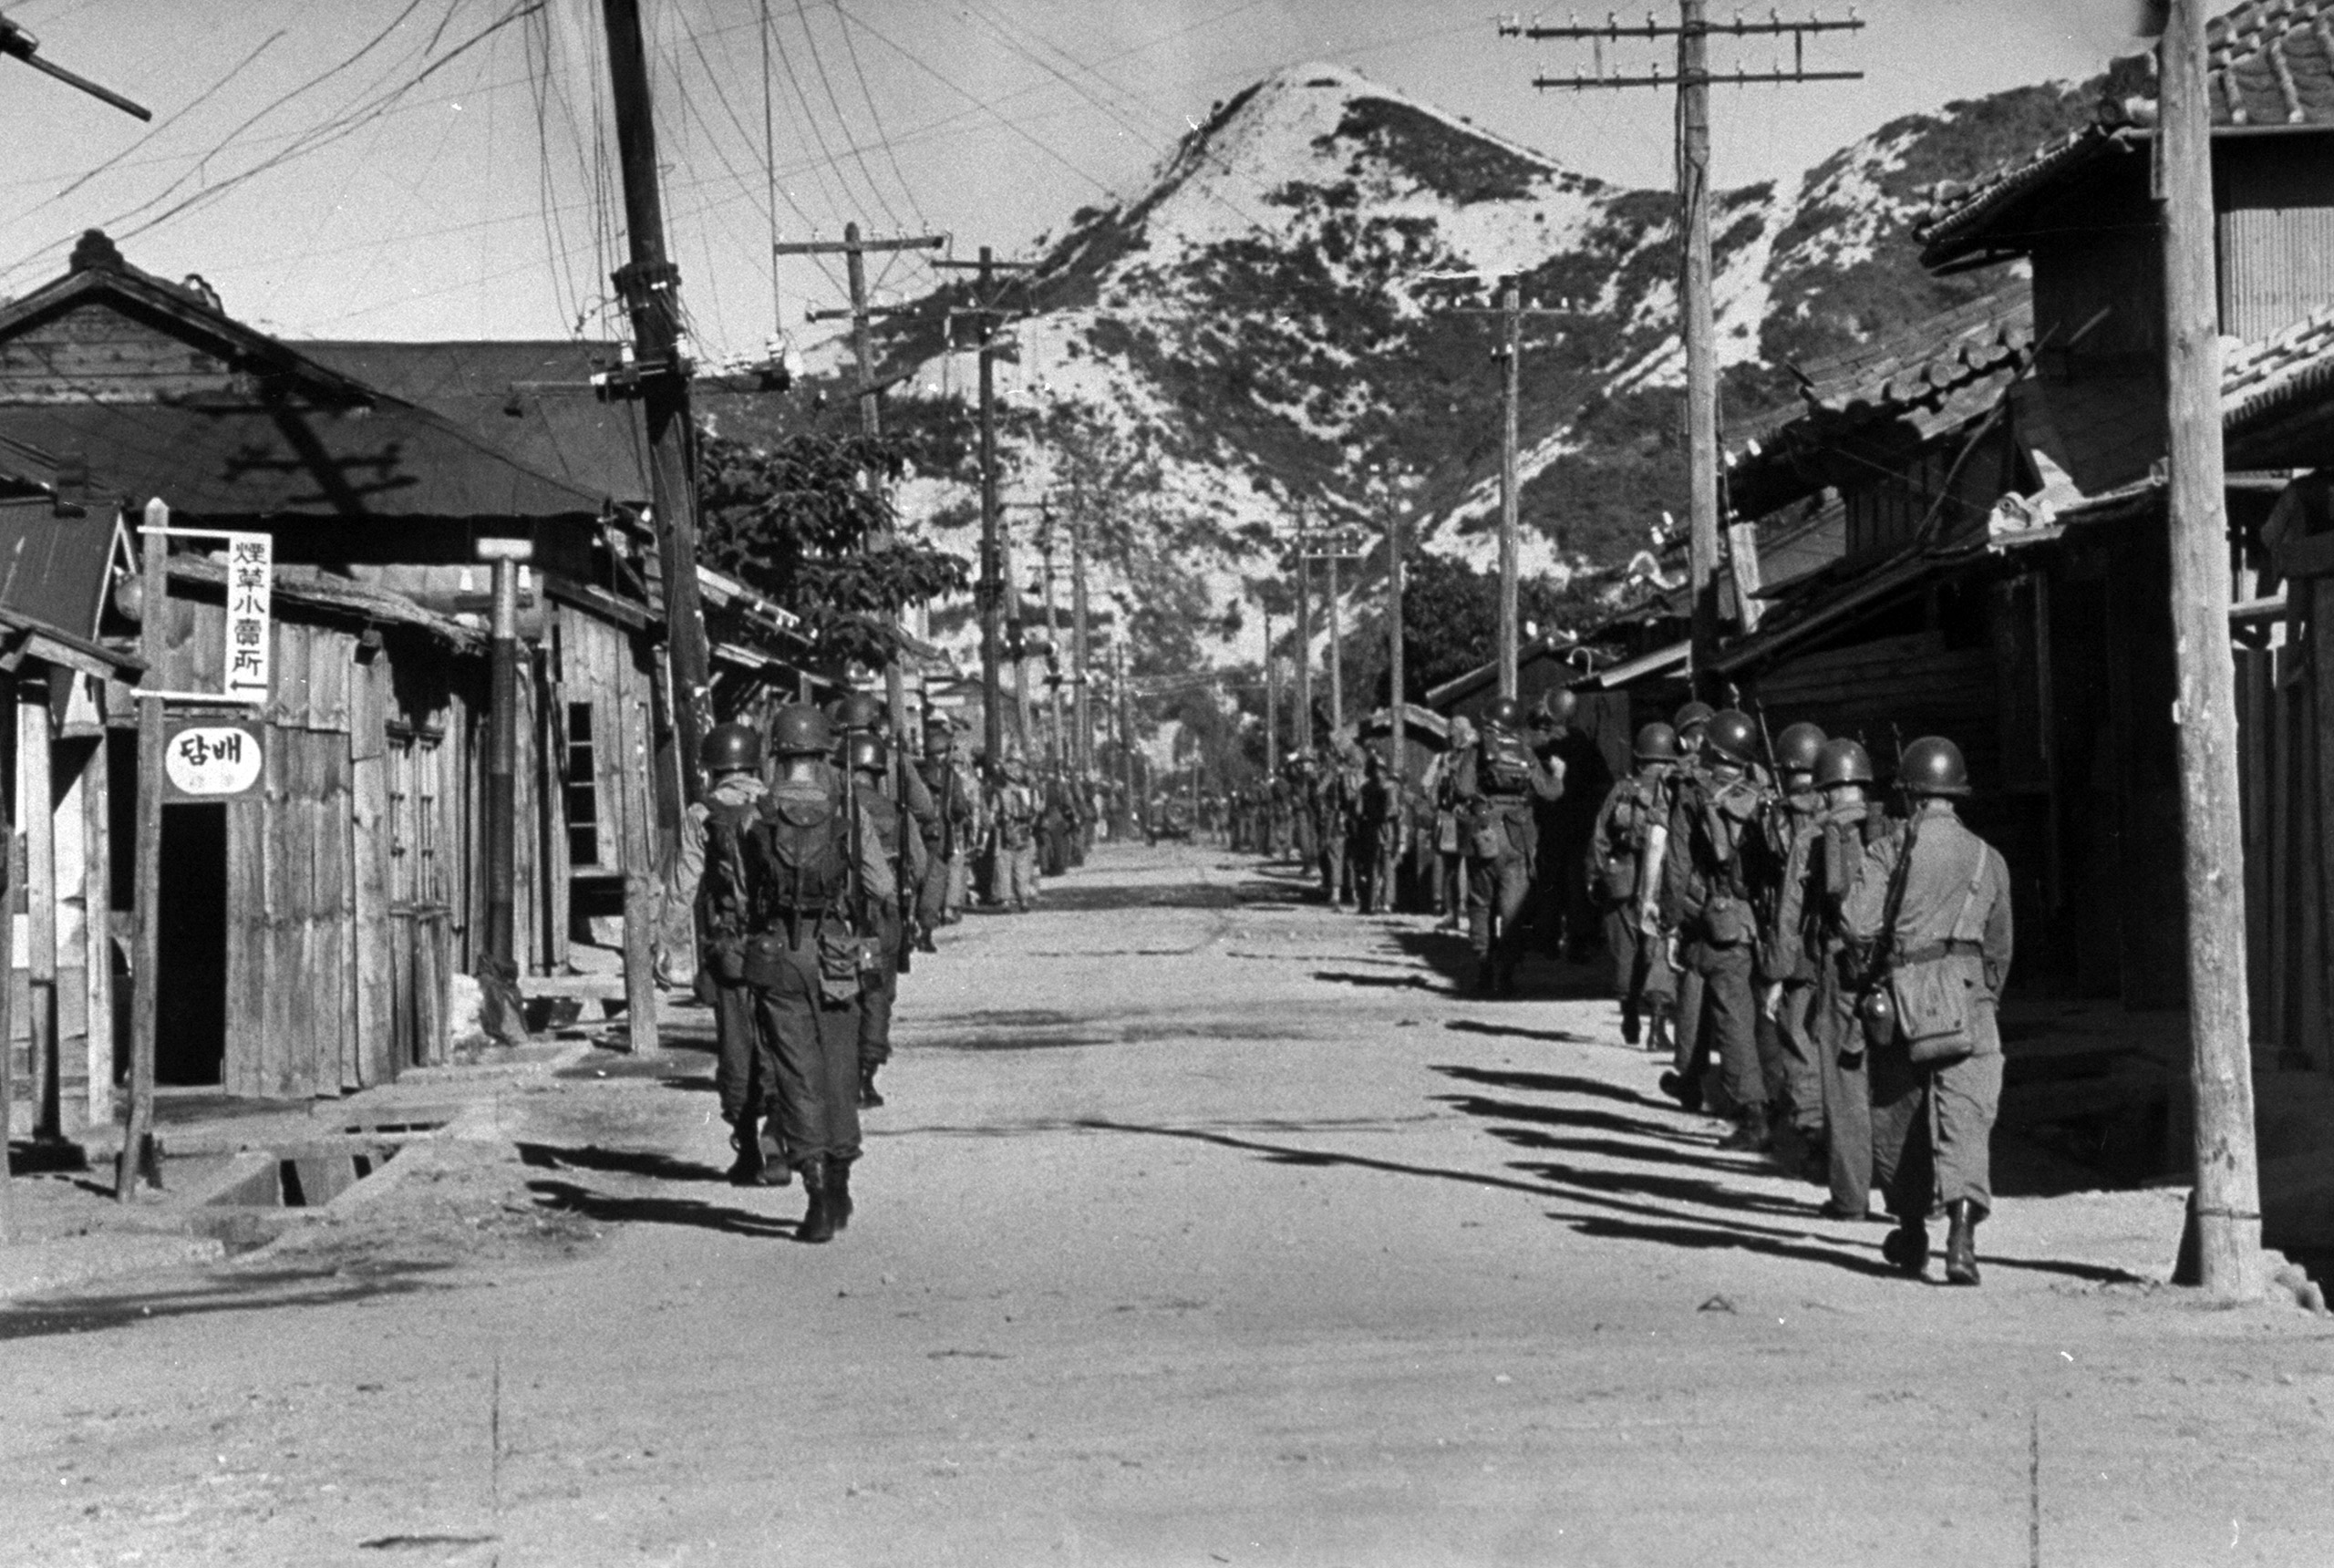 <b>Caption from LIFE.</b> GI's march through town to take positions in hills. A few Koreans stared from windows.